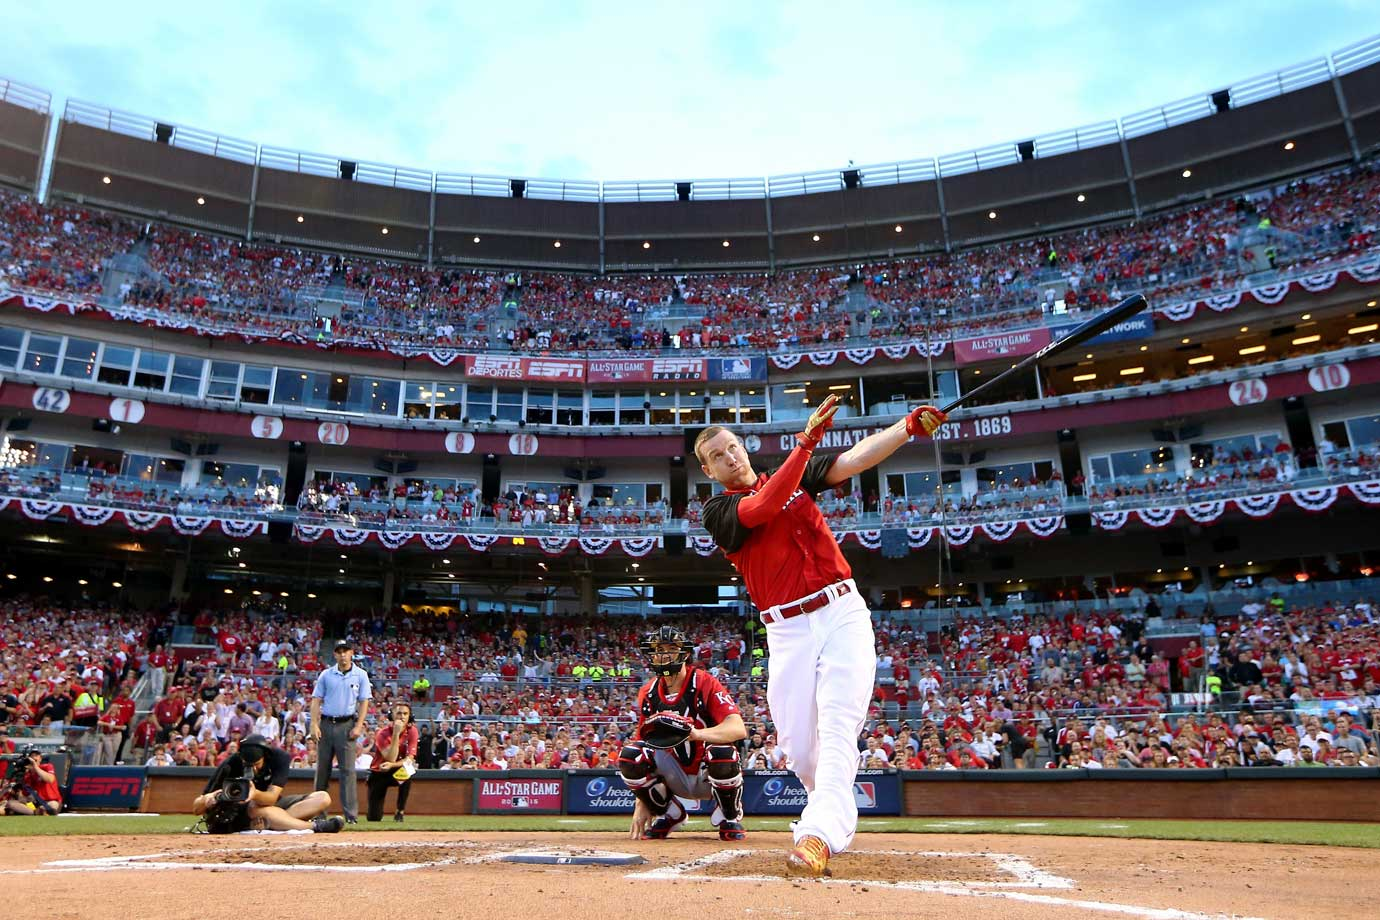 In the first year with timed rounds, it came down to the wire. Playing in front of his home fans at Great American Ball Park, Todd Frazier crushed one to the seats in left centerfield on his first bonus-round swing in the final round, giving him a 15–14 win over Dodgers rookie Joc Pederson. A year after falling short in the final, the Reds third baseman walked away with the hardware this time, becoming just the second player to win in front of his home crowd, joining the Cubs' Ryne Sandberg (1990) in that category.